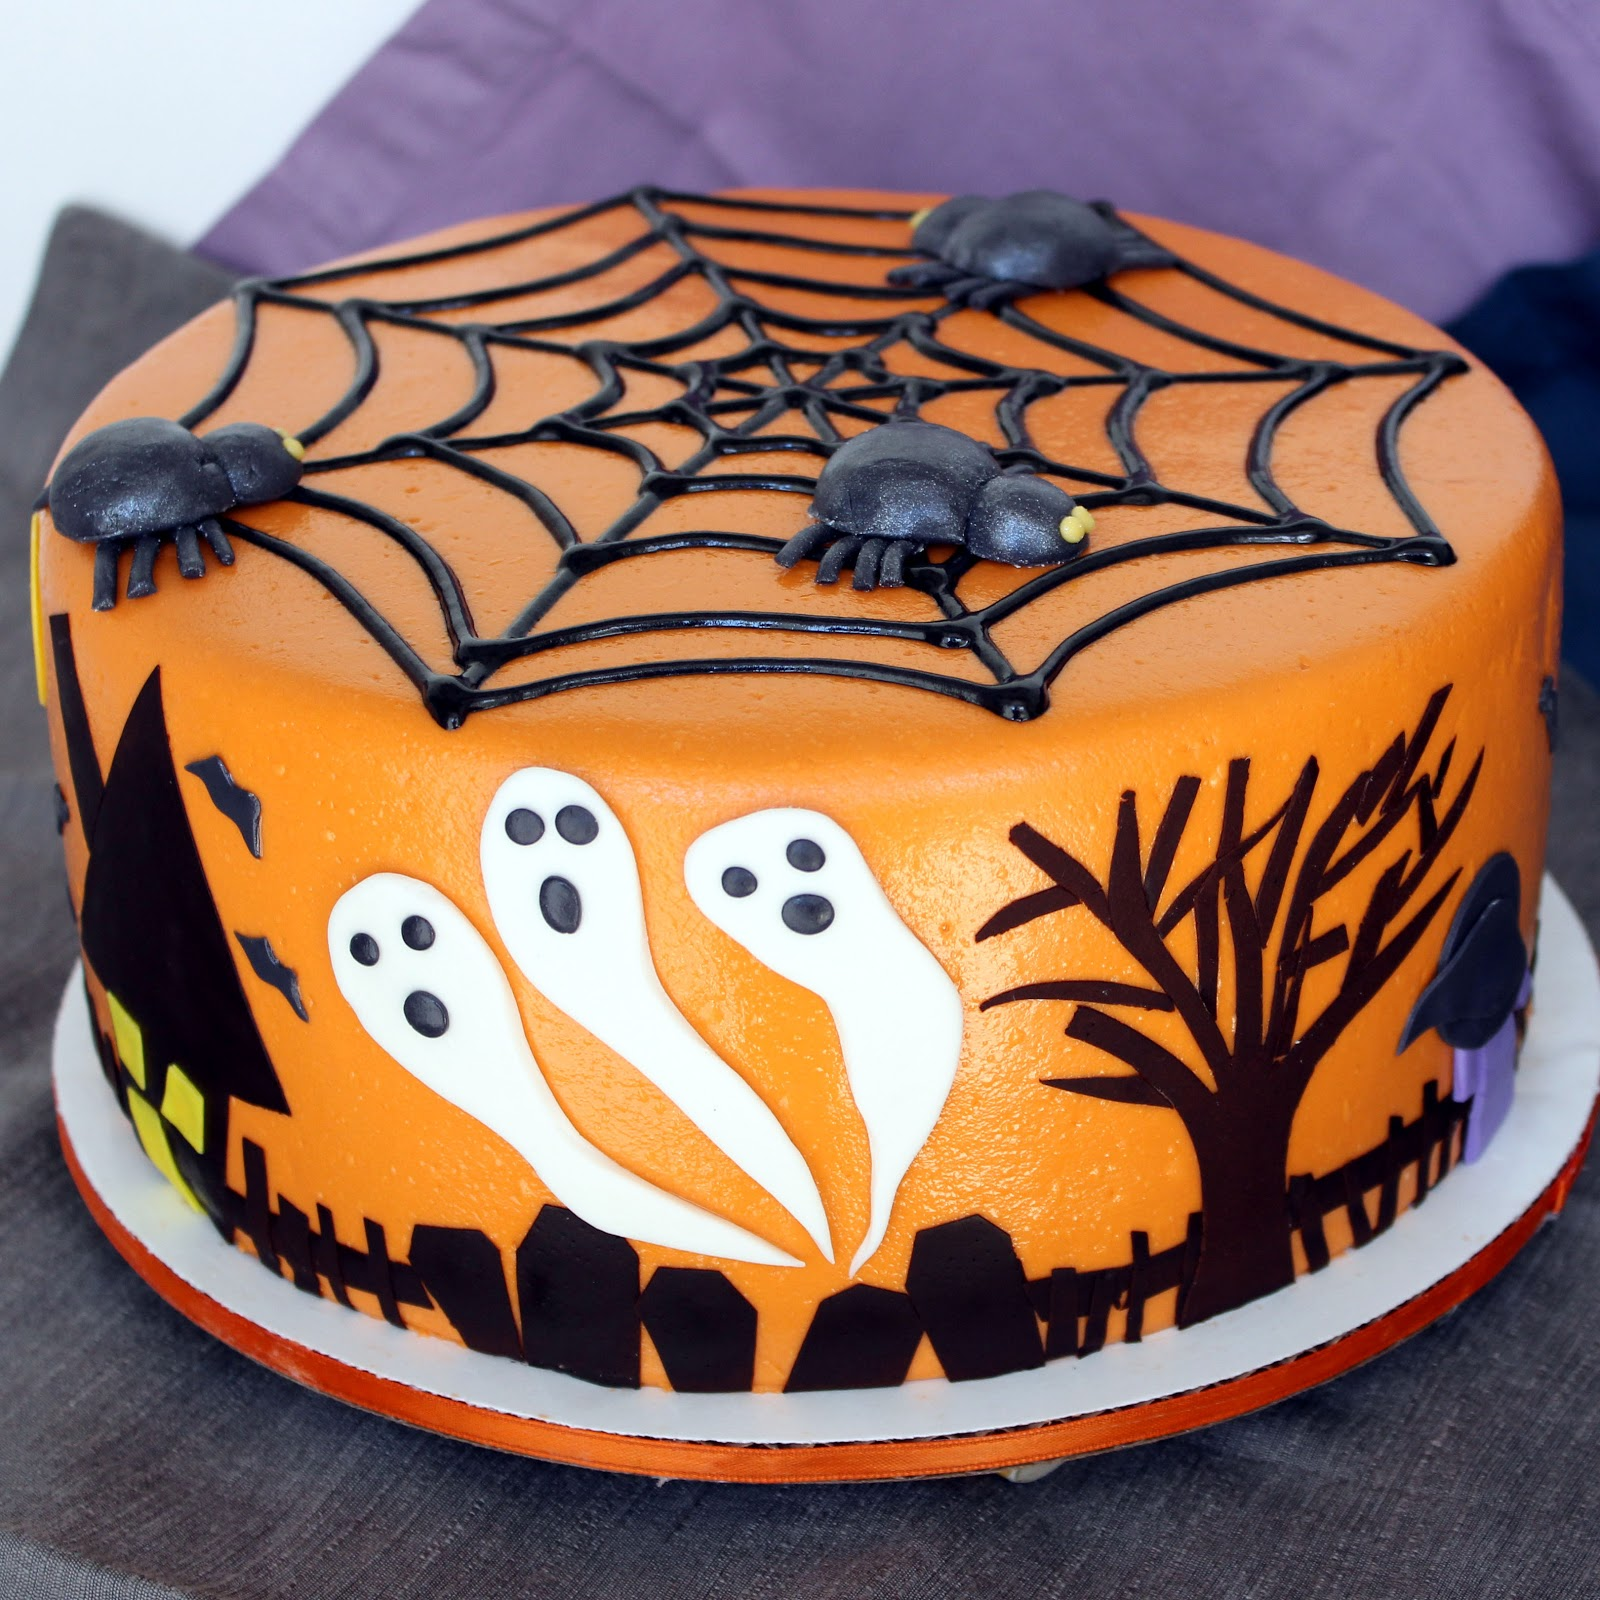 Cake Decorating Ideas Halloween : Halloween Cake Ideas - The Xerxes